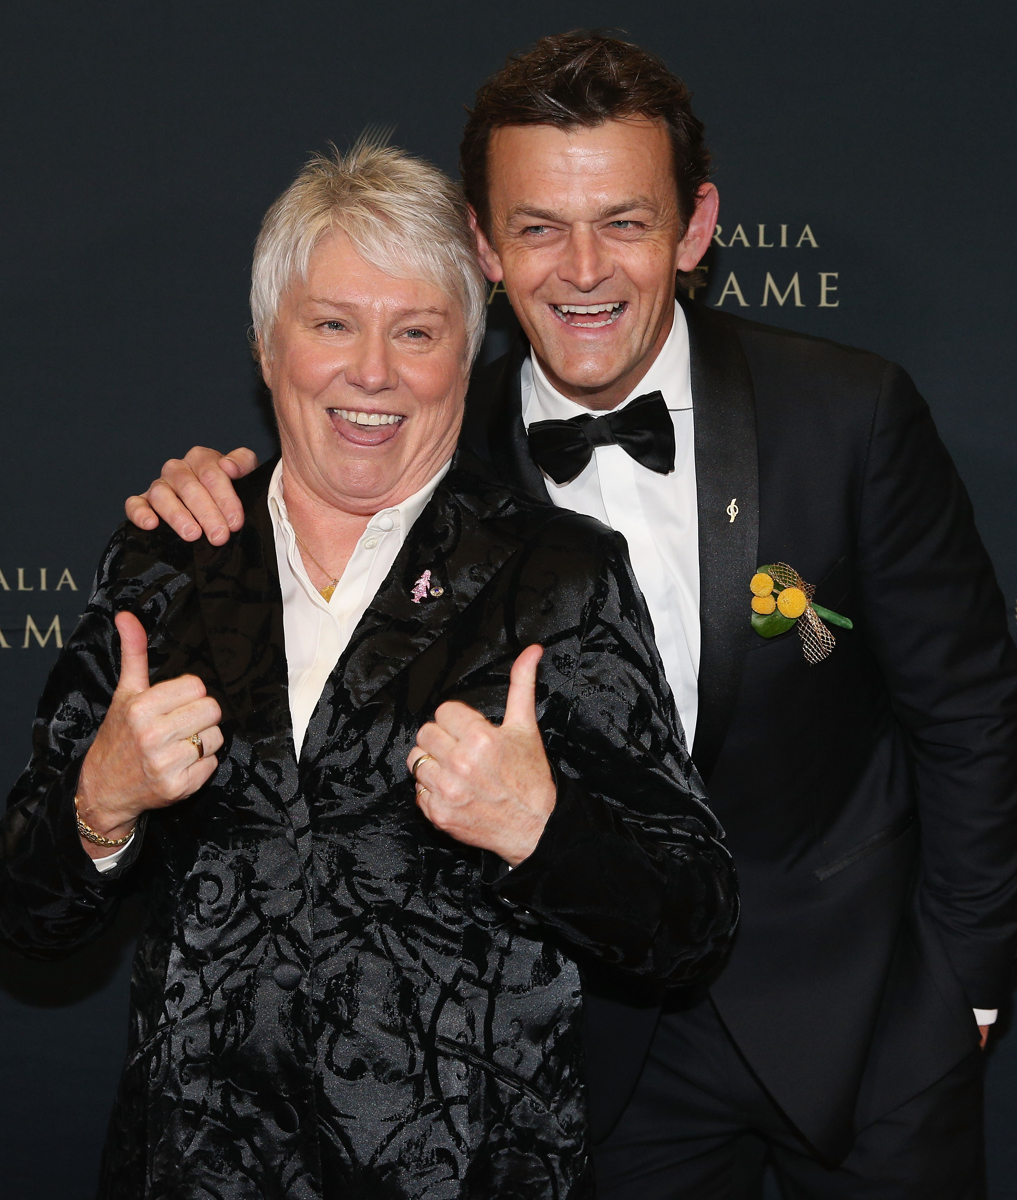 Raelene Boyle poses with Adam Gilchrist at the Sport Australia Hall of Fame Annual Induction and Awards Gala Dinner. Pic: Michael Dodge/Getty Images